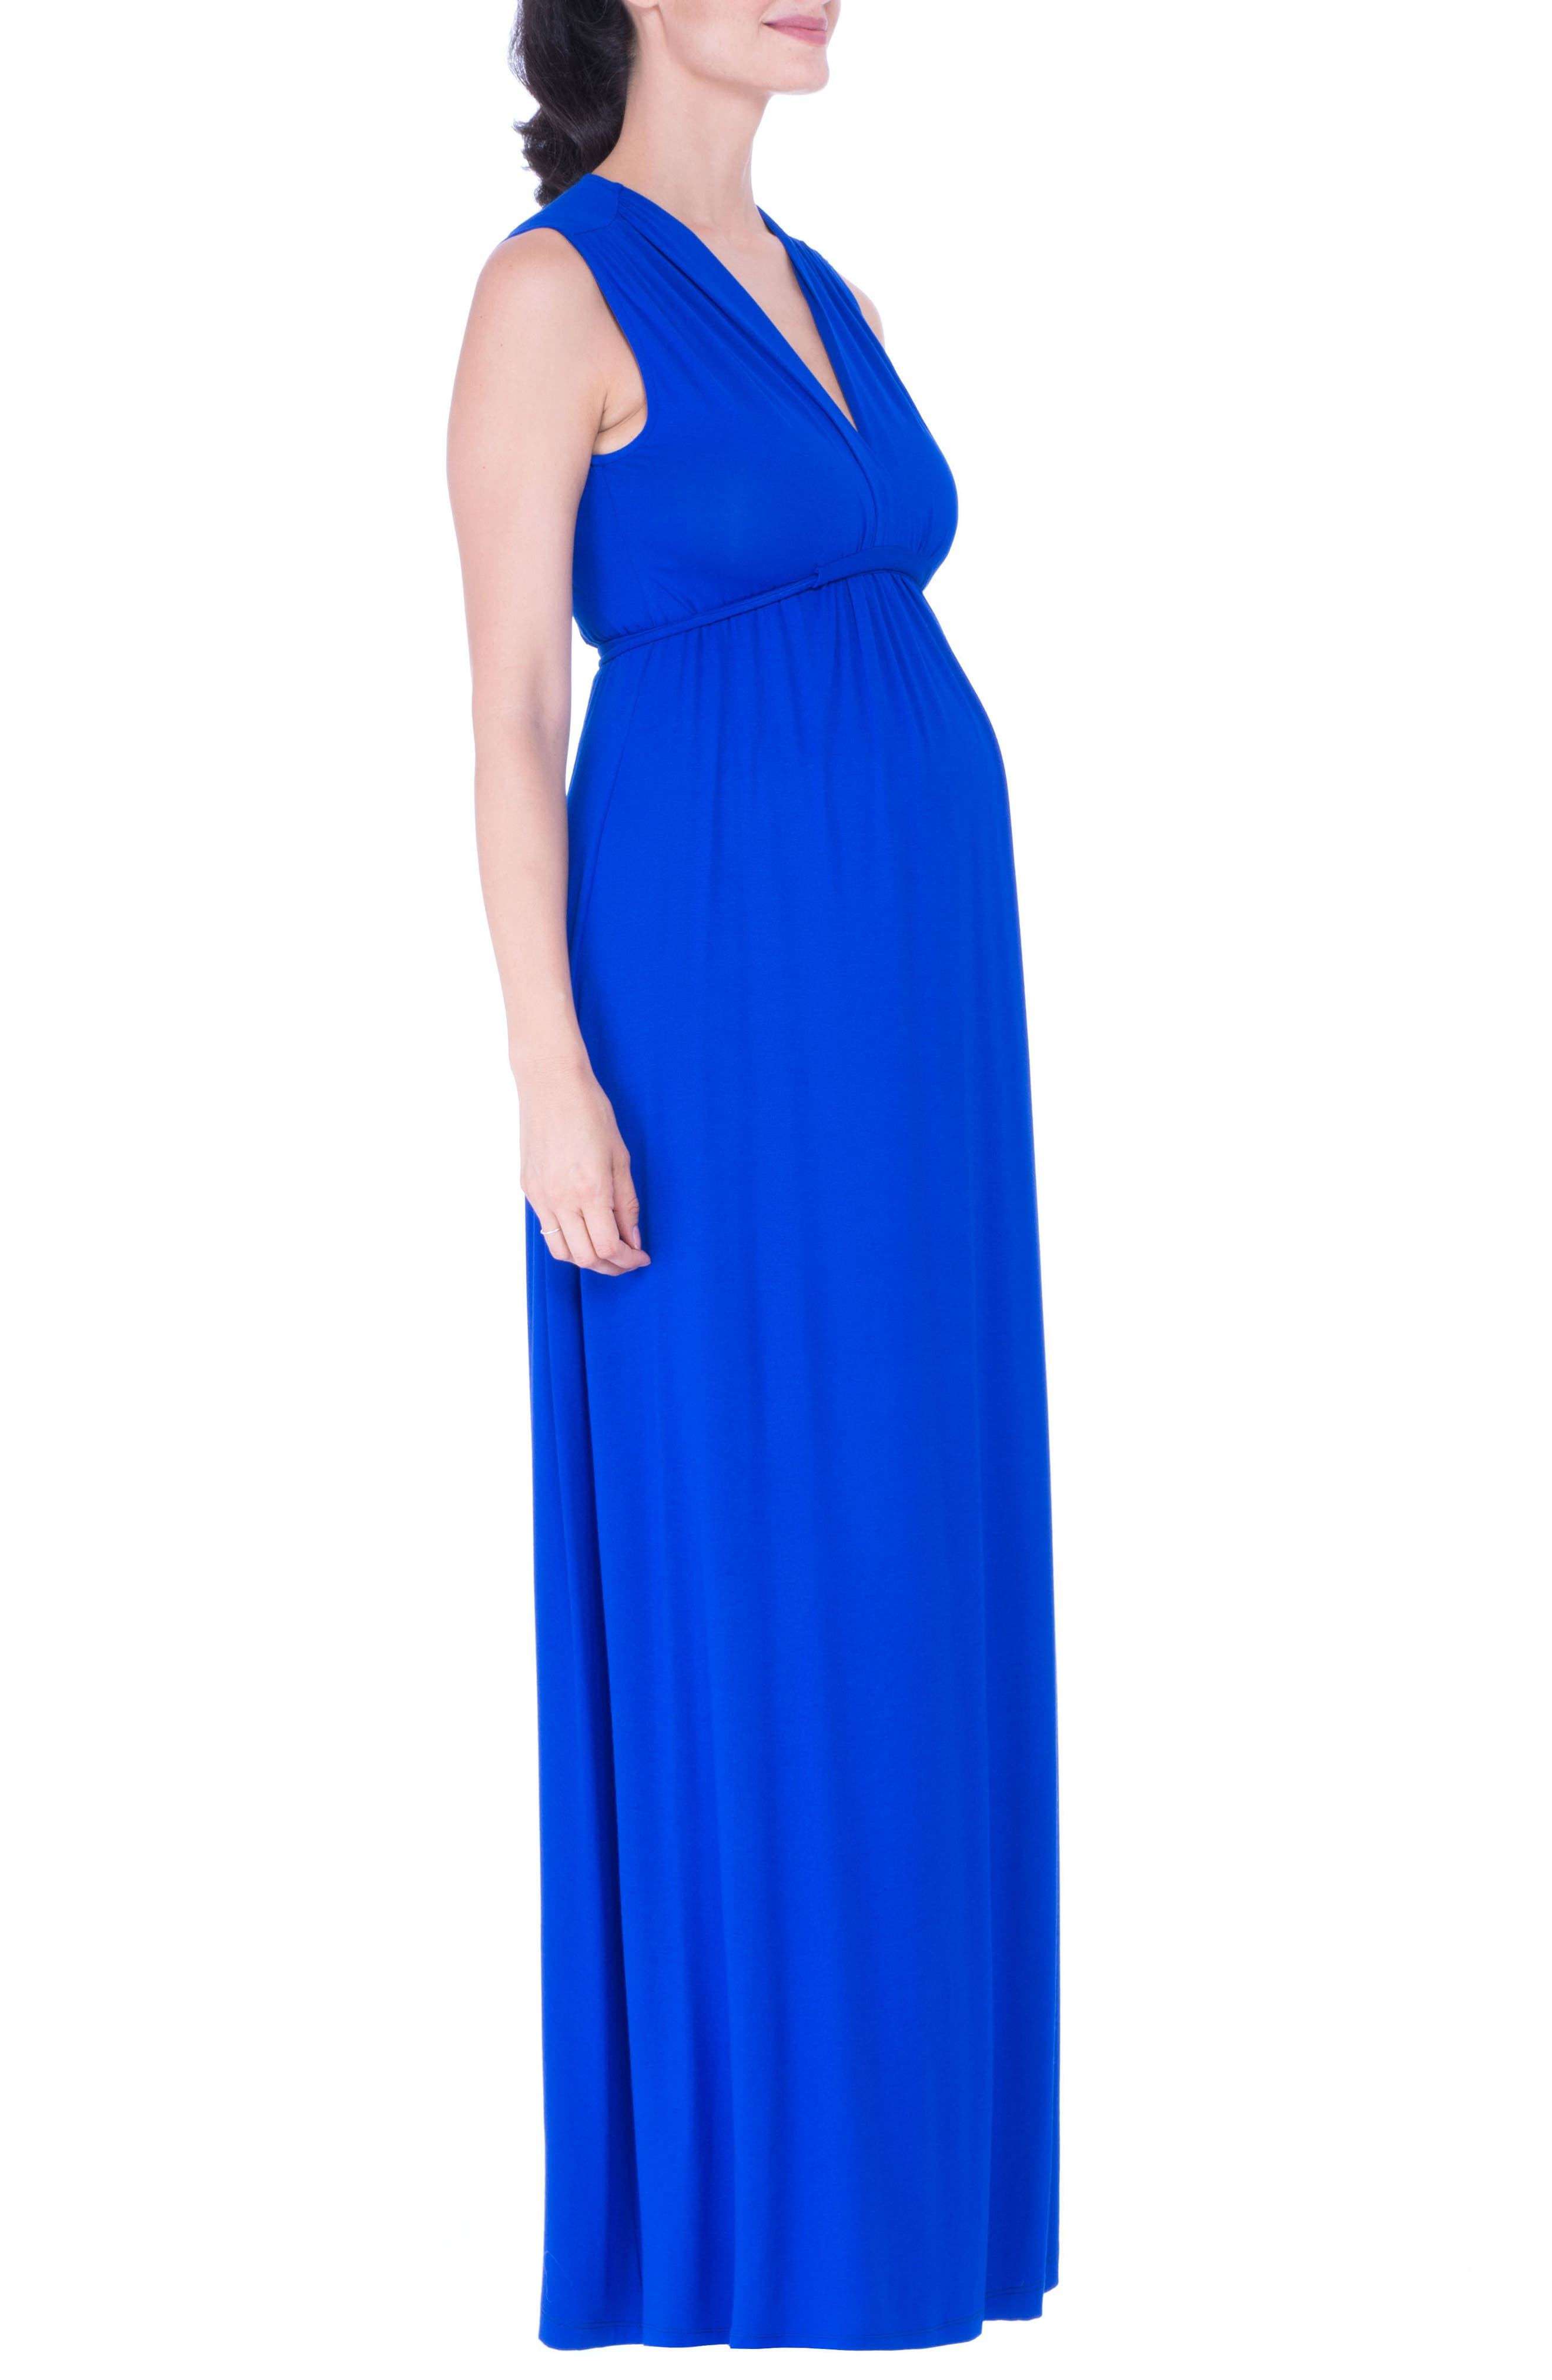 Lucy Maternity Maxi Dress,                             Alternate thumbnail 3, color,                             BLUE